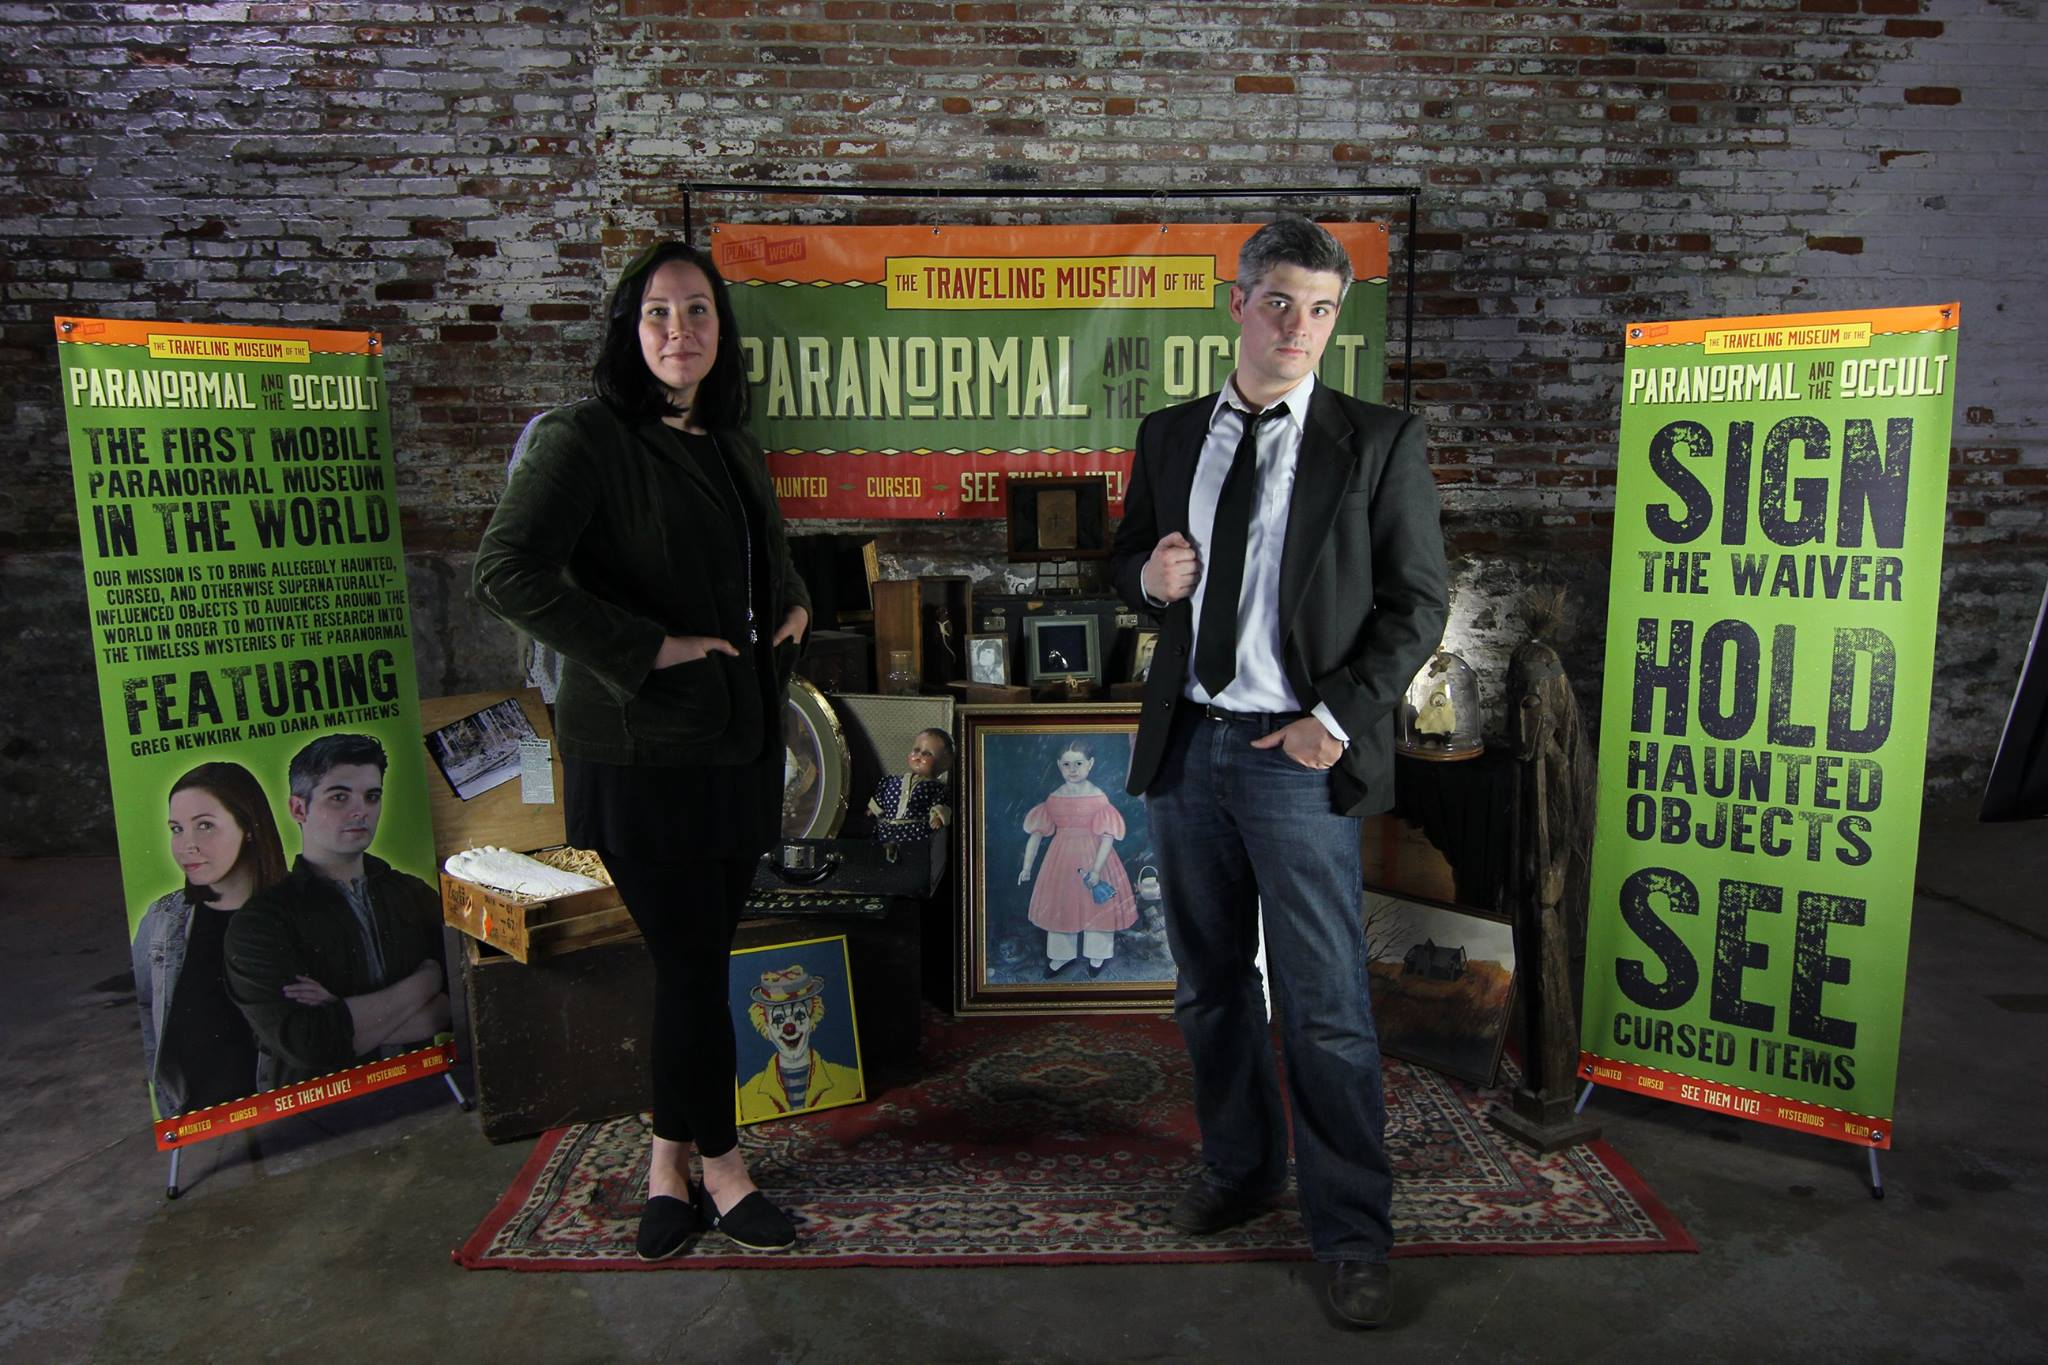 Greg Newkirk and Dana Matthews with the Traveling Museum of the Paranormal & Occult